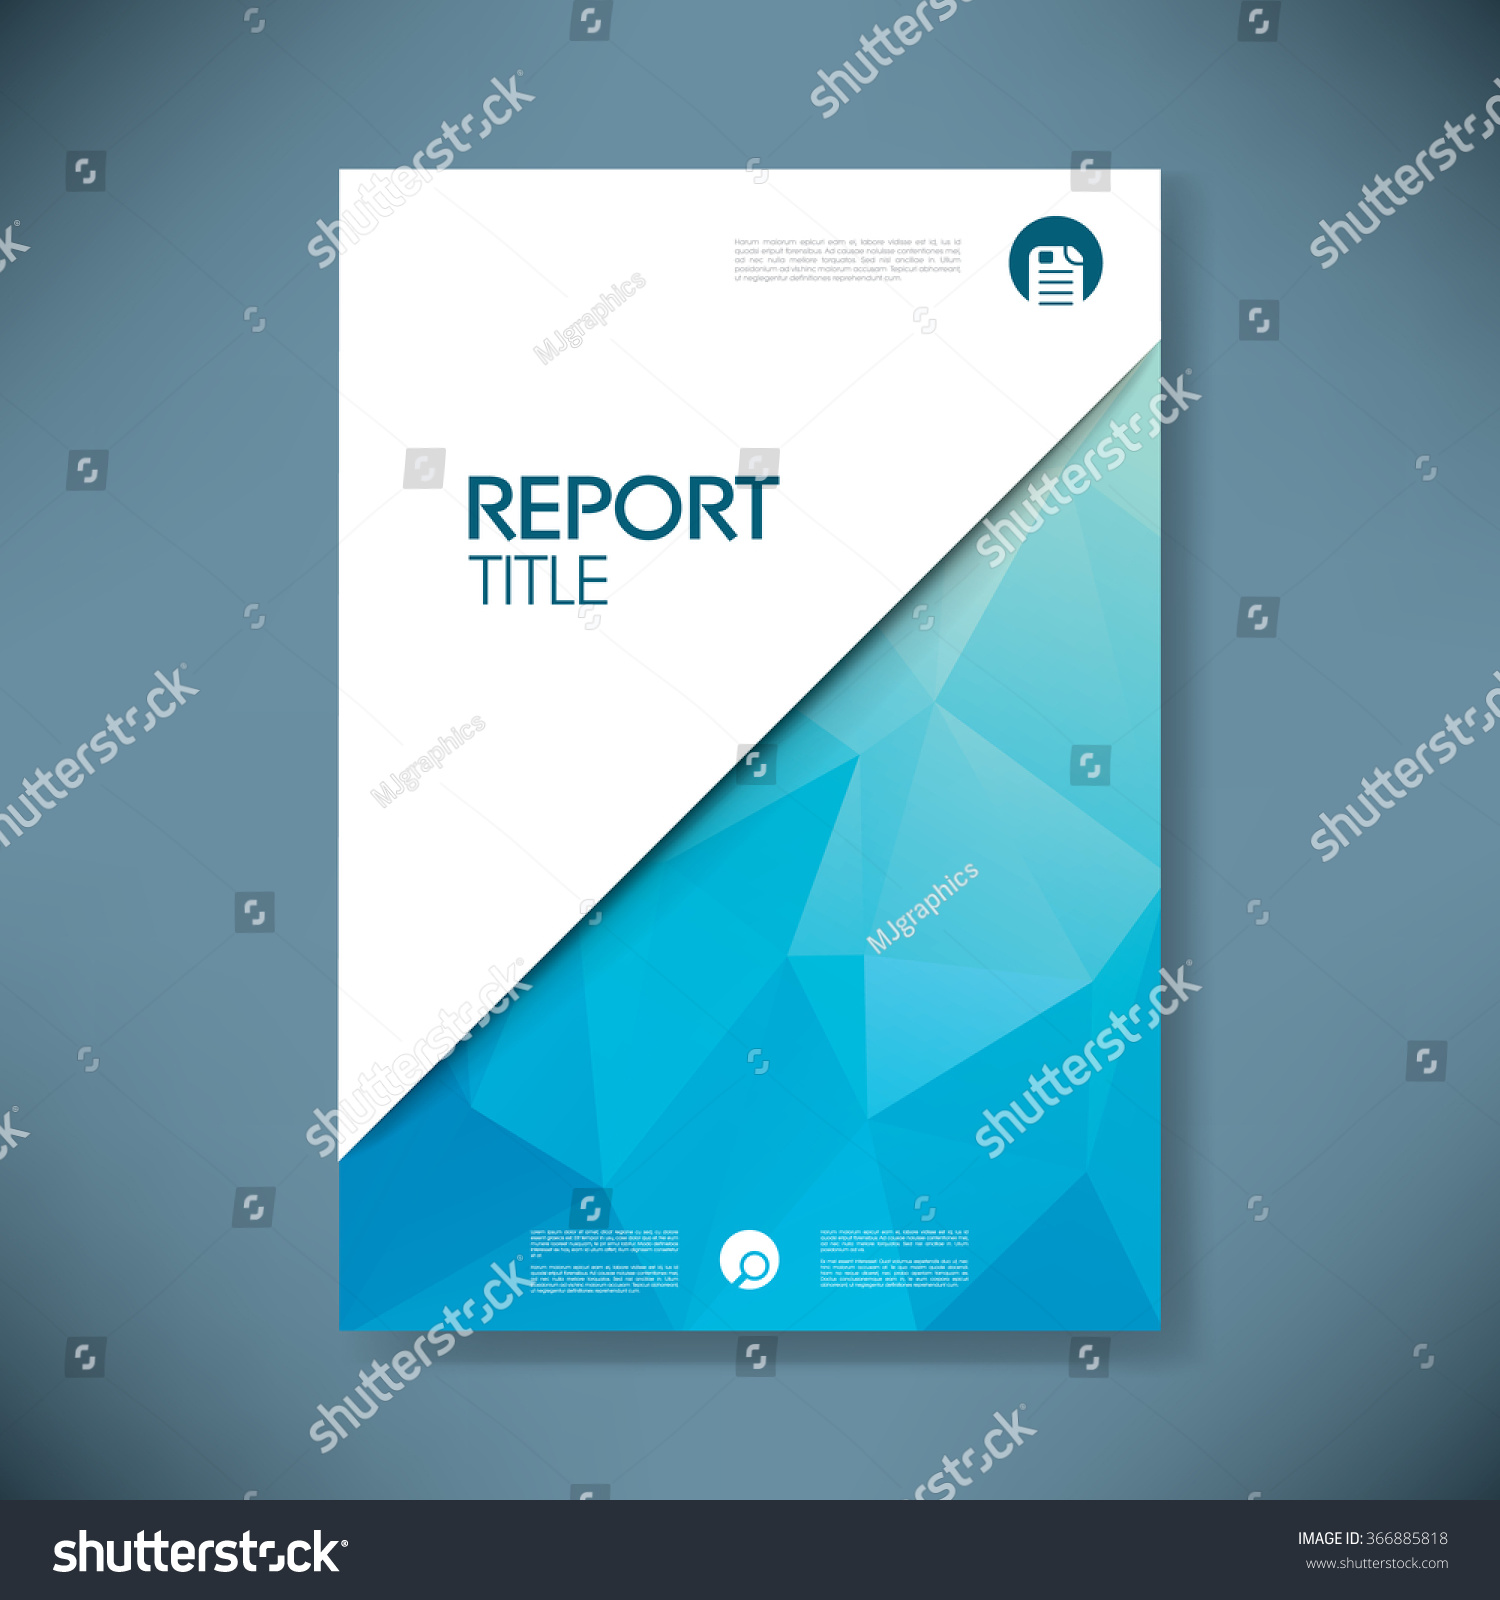 Business Deposit Book Cover : Business report cover low poly design stock vector